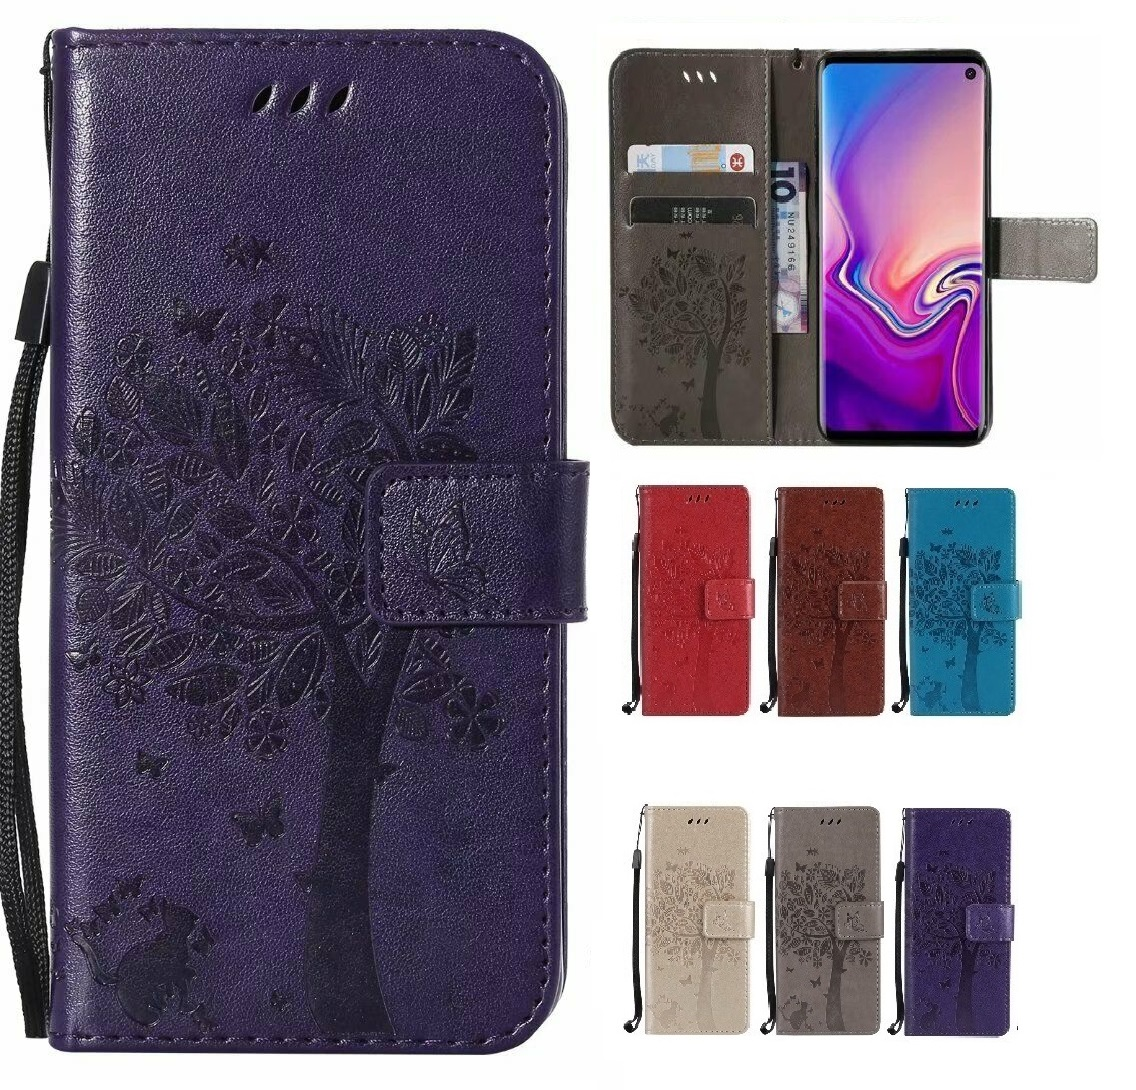 Flip Stand <font><b>Case</b></font> TOP Quality PU Leather Cover With View For <font><b>oukitel</b></font> C9 C8 U18 <font><b>K5</b></font> K6 K8000 K5000 K4000 PLUS U22 PLUS image